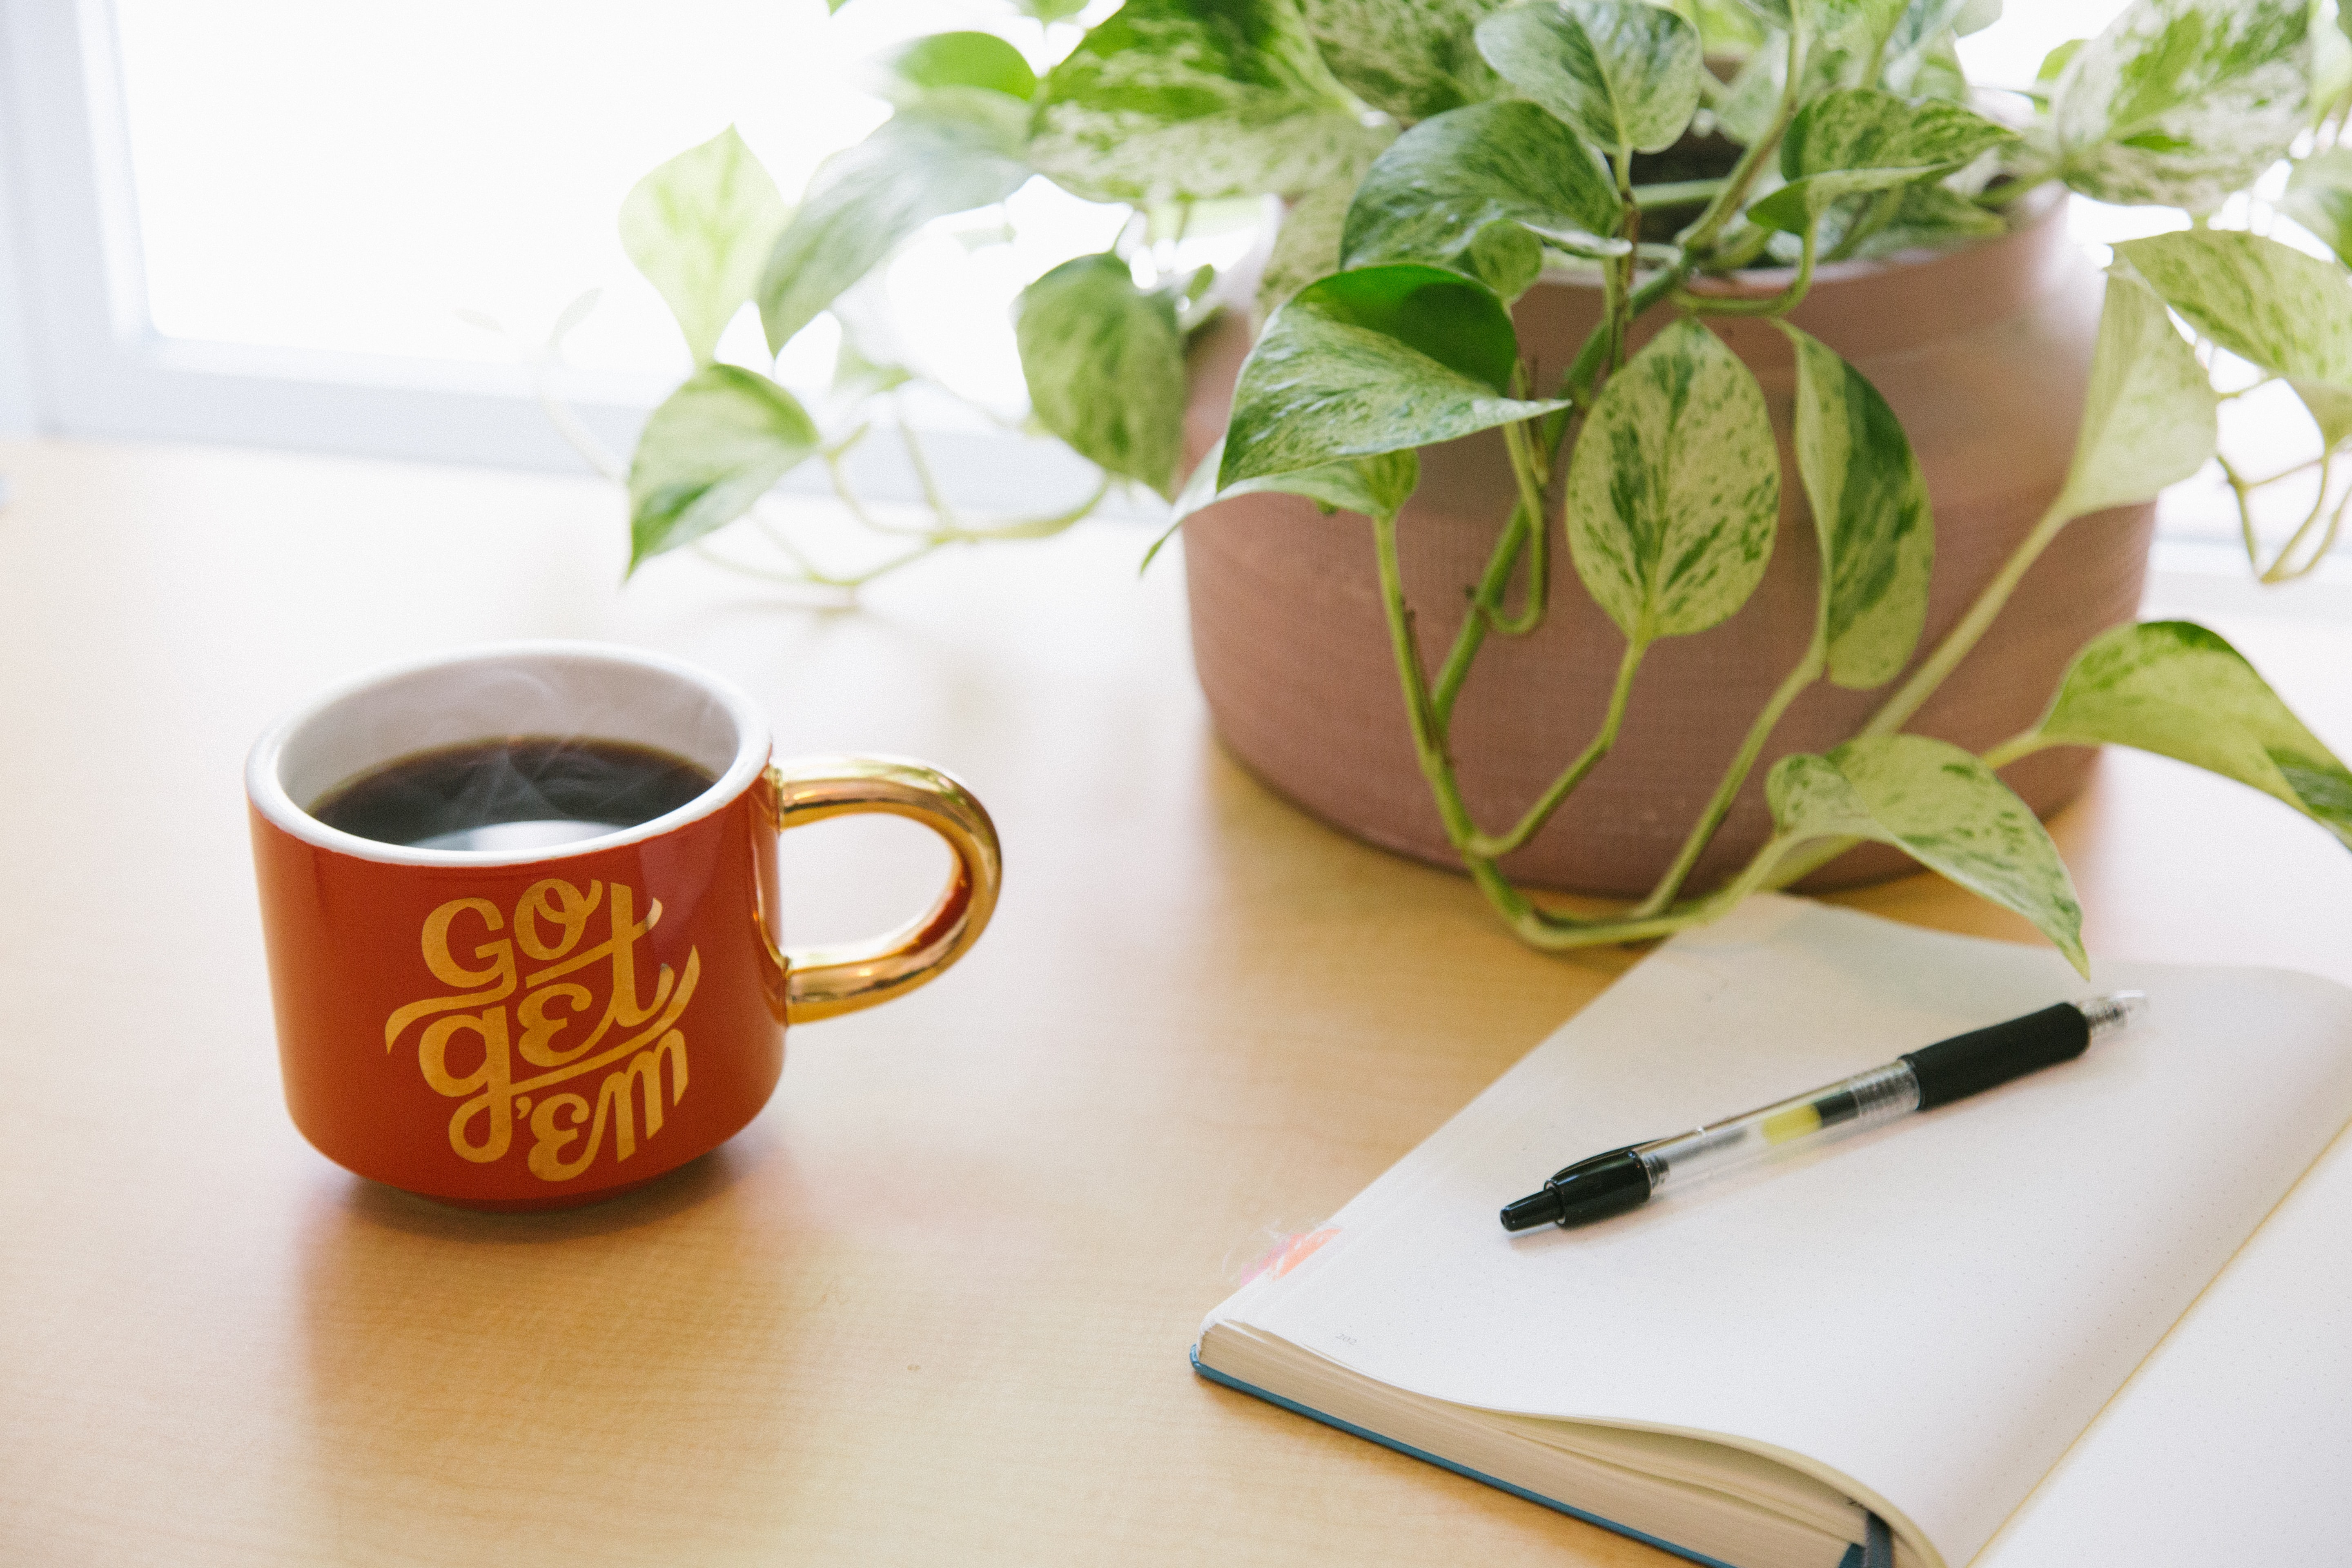 Desk with house plant and coffee cup with coffee and notebook with pen